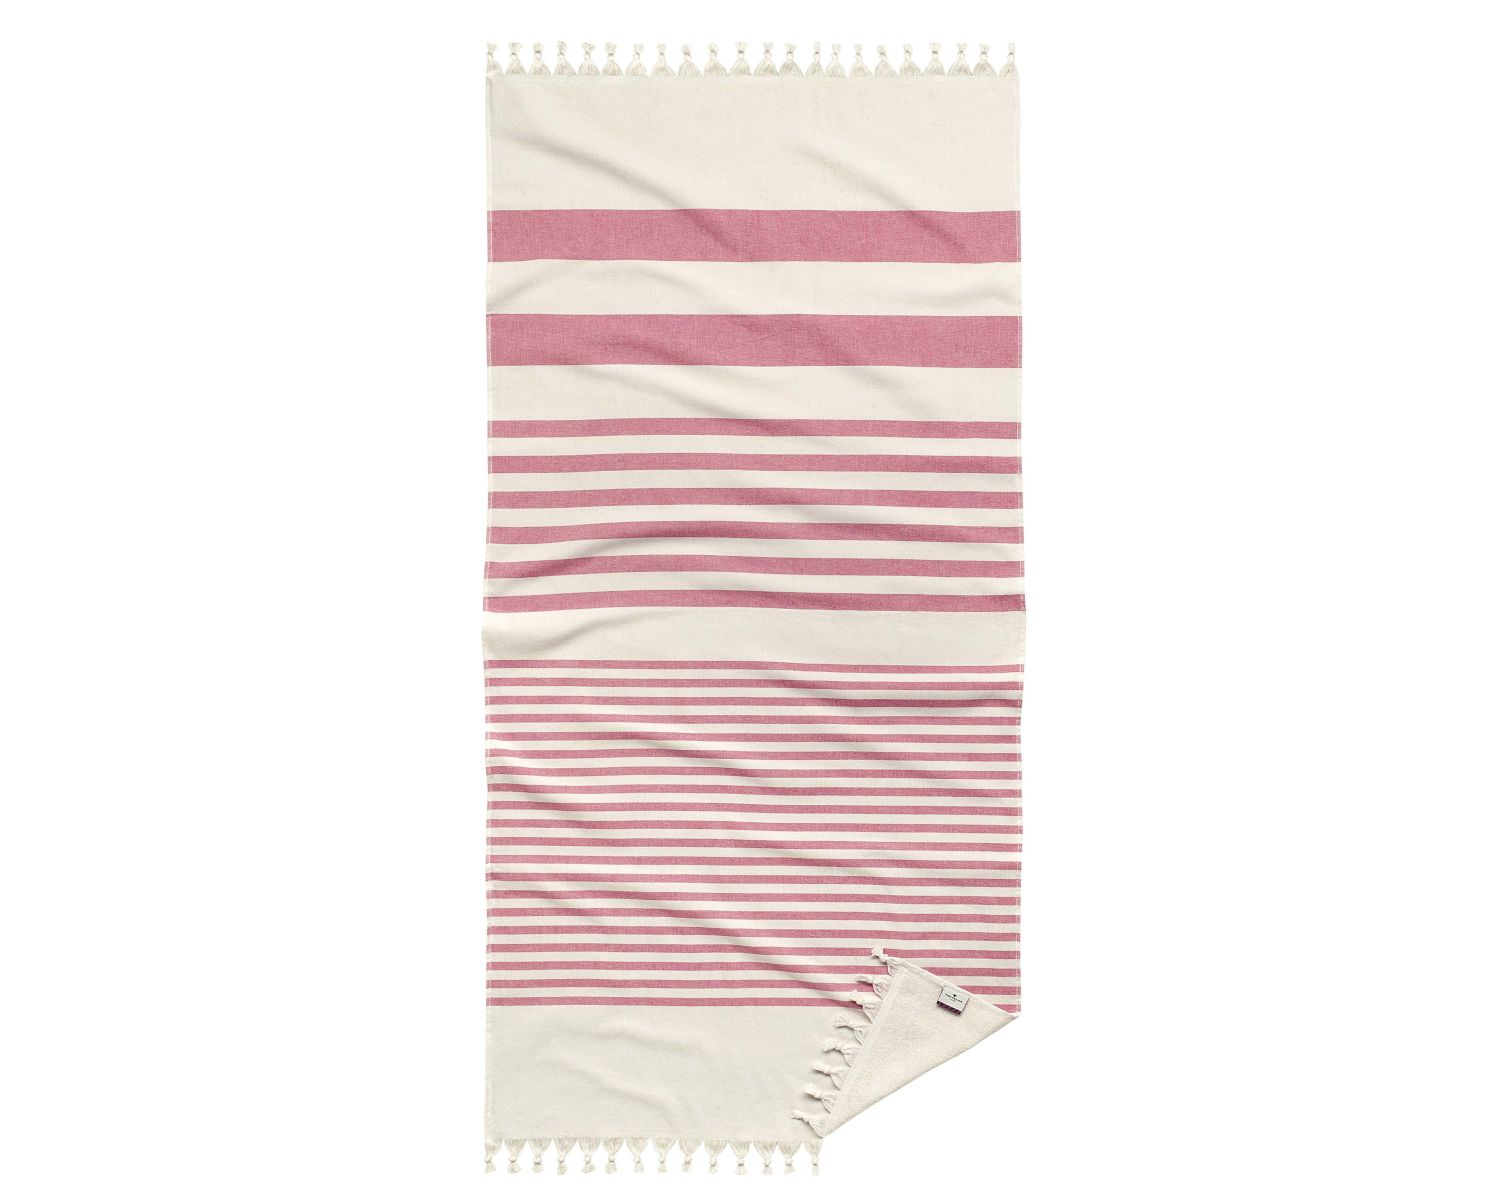 Tom-Tailor Hamam Beach Towel 100 267 Fb. 927 - Artikelbild